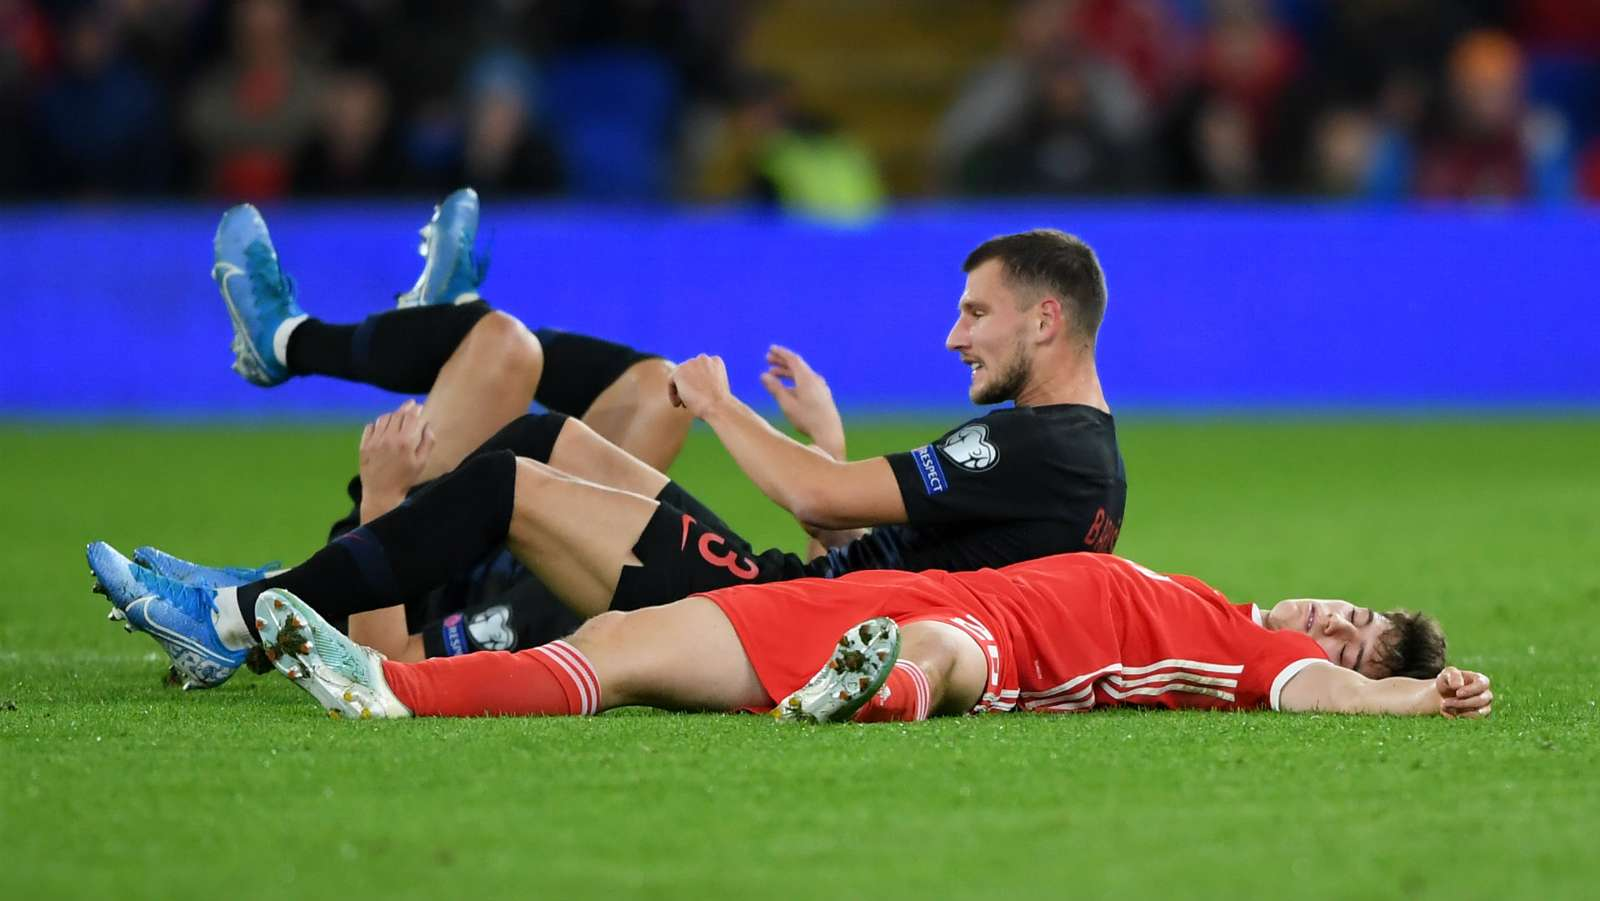 Man Utd winger Daniel James insists he was not knocked out during heavy collision in Wales draw - Bóng Đá